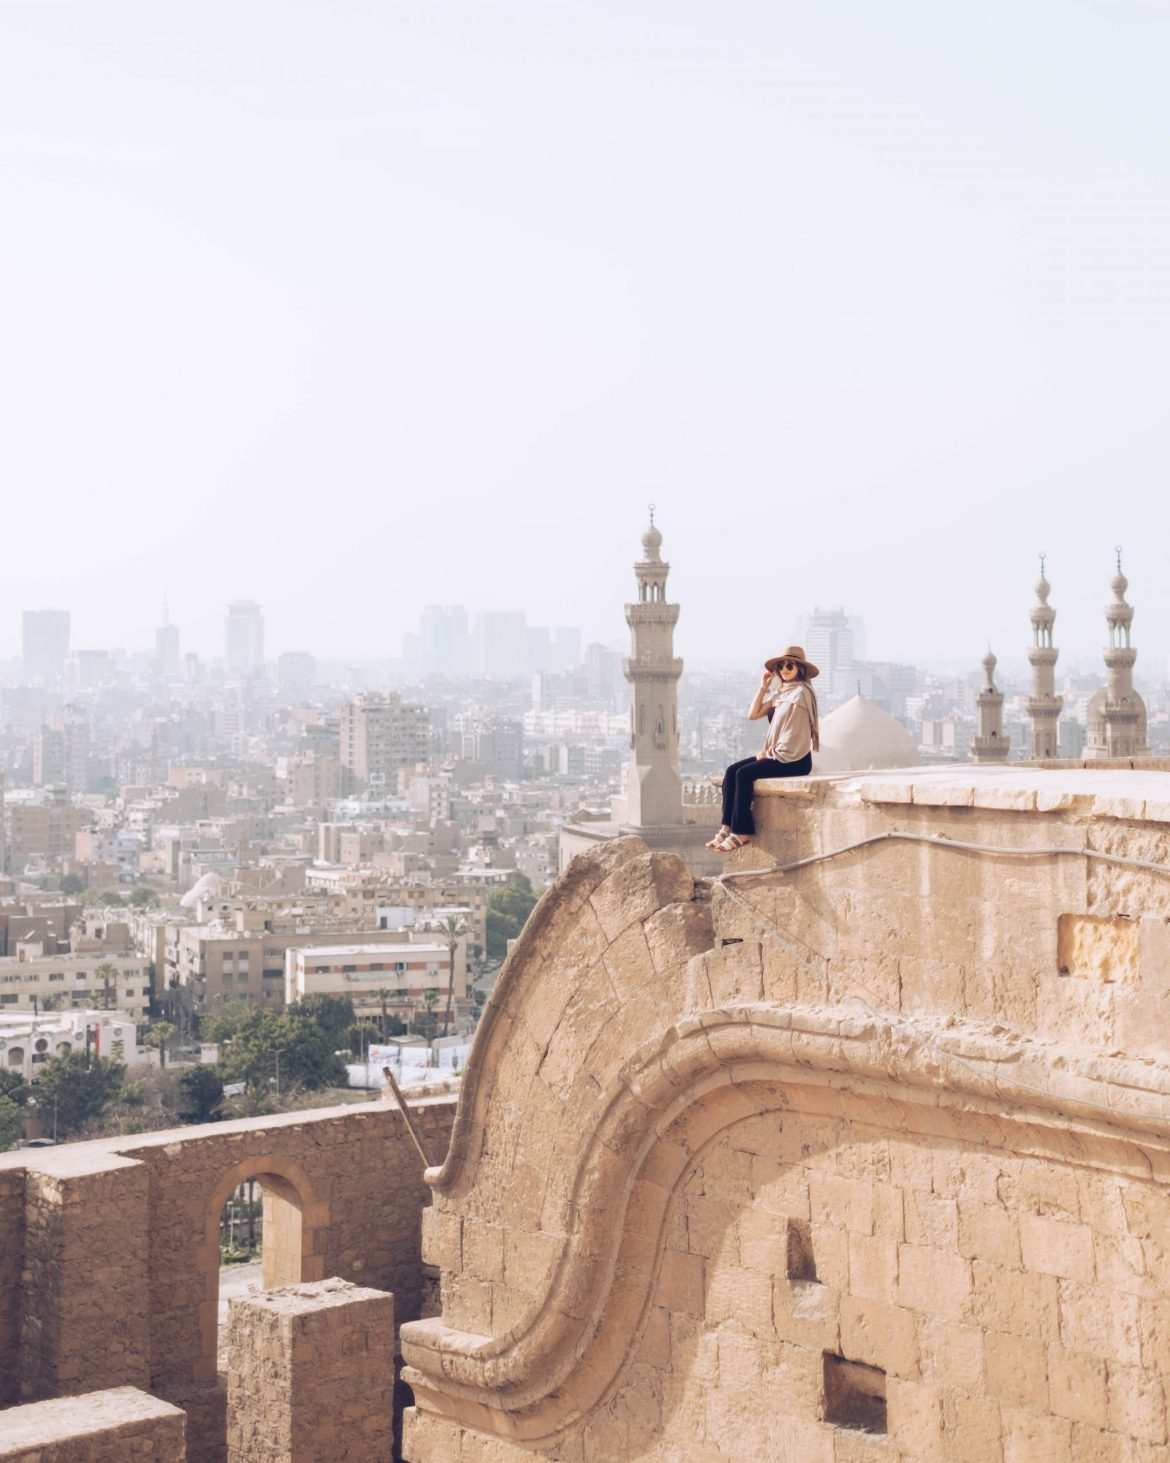 views from Muhammed Ali Mosque - Egypt travel guide and itinerary